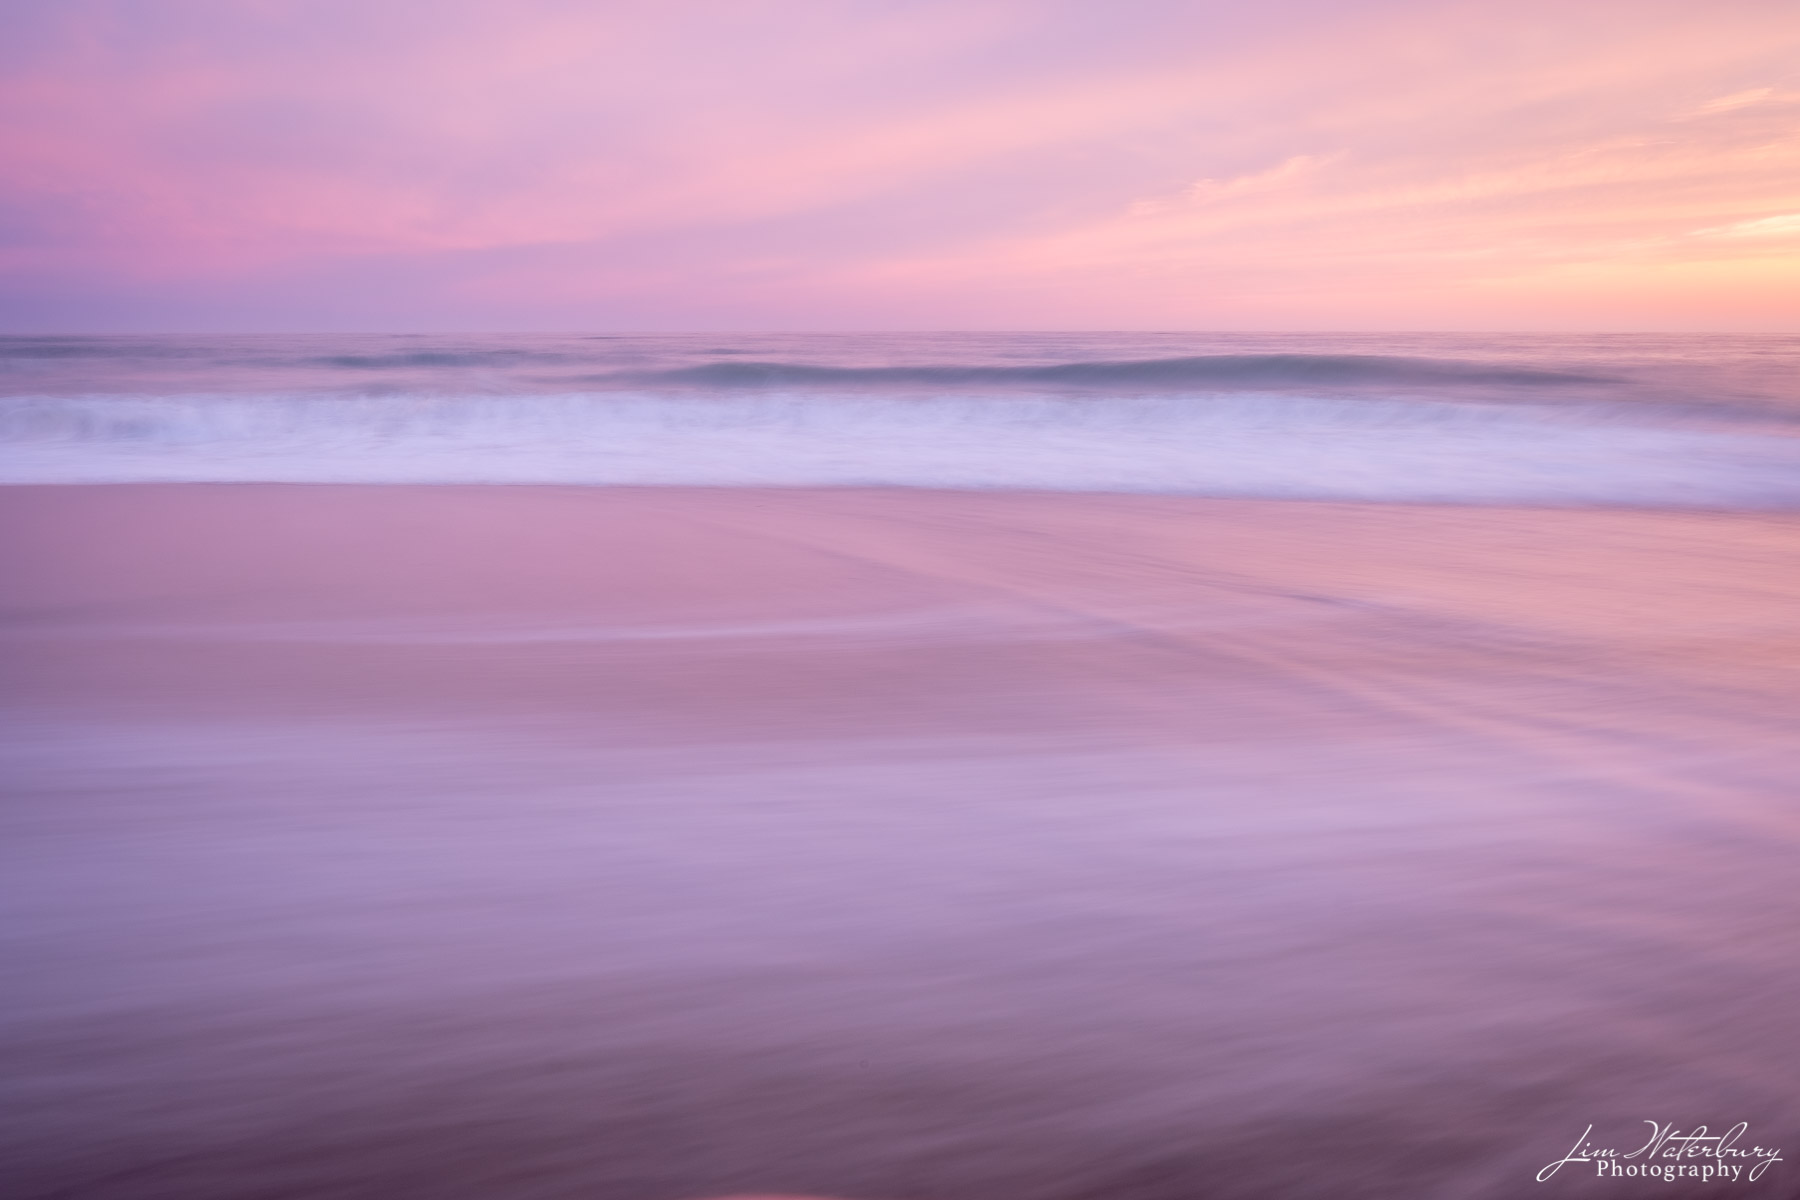 pink, sky, surf, beach, ocean, photo